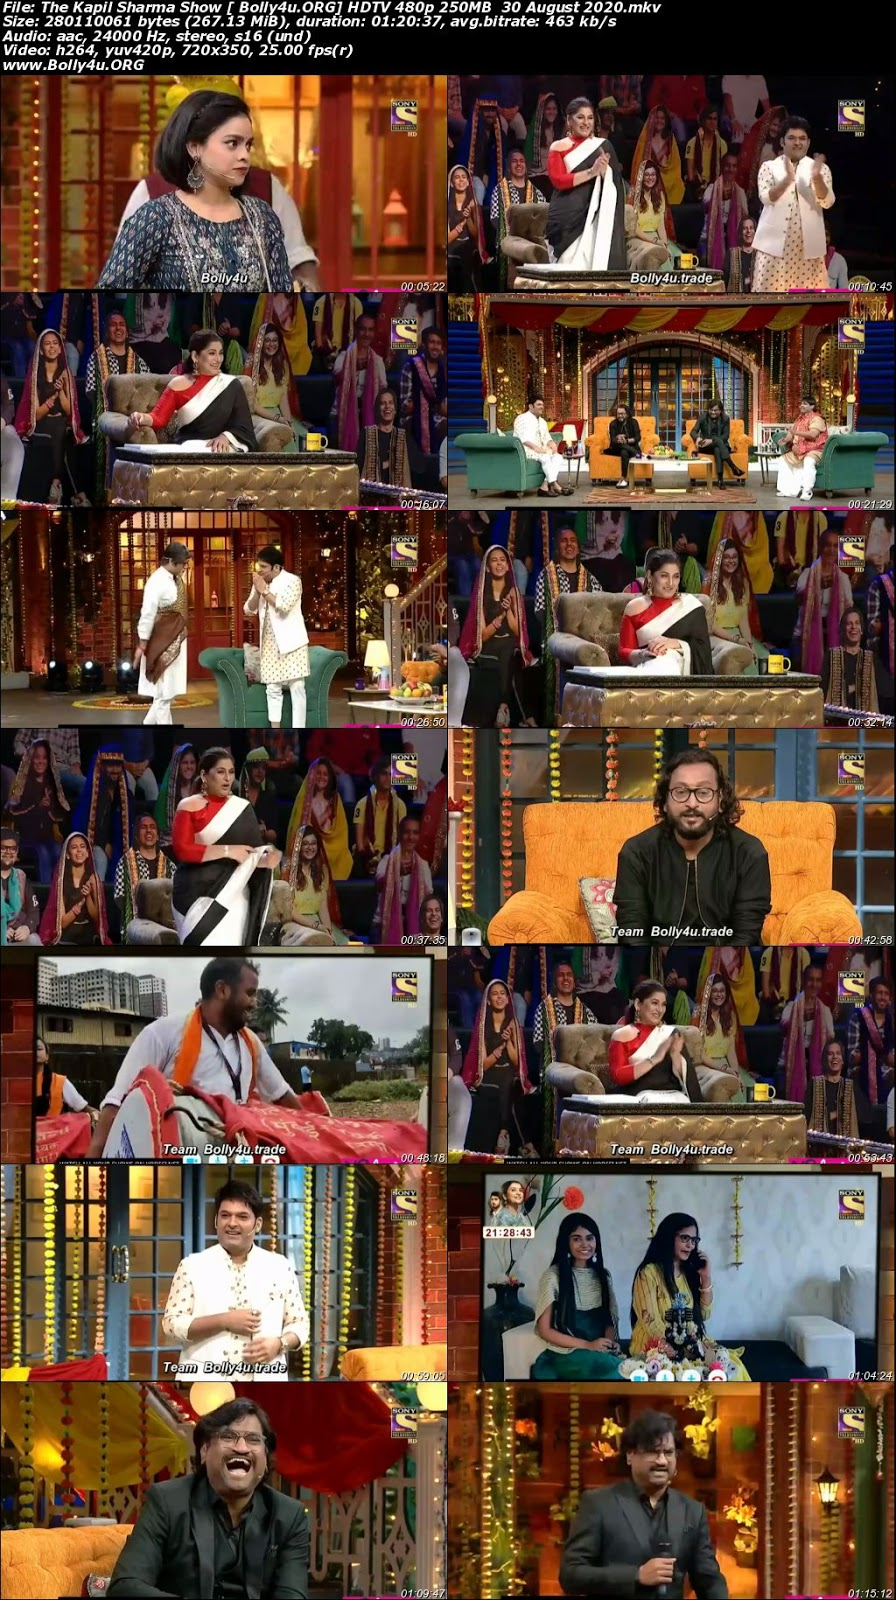 The Kapil Sharma Show HDTV 480p 250MB 30 August 2020 Download